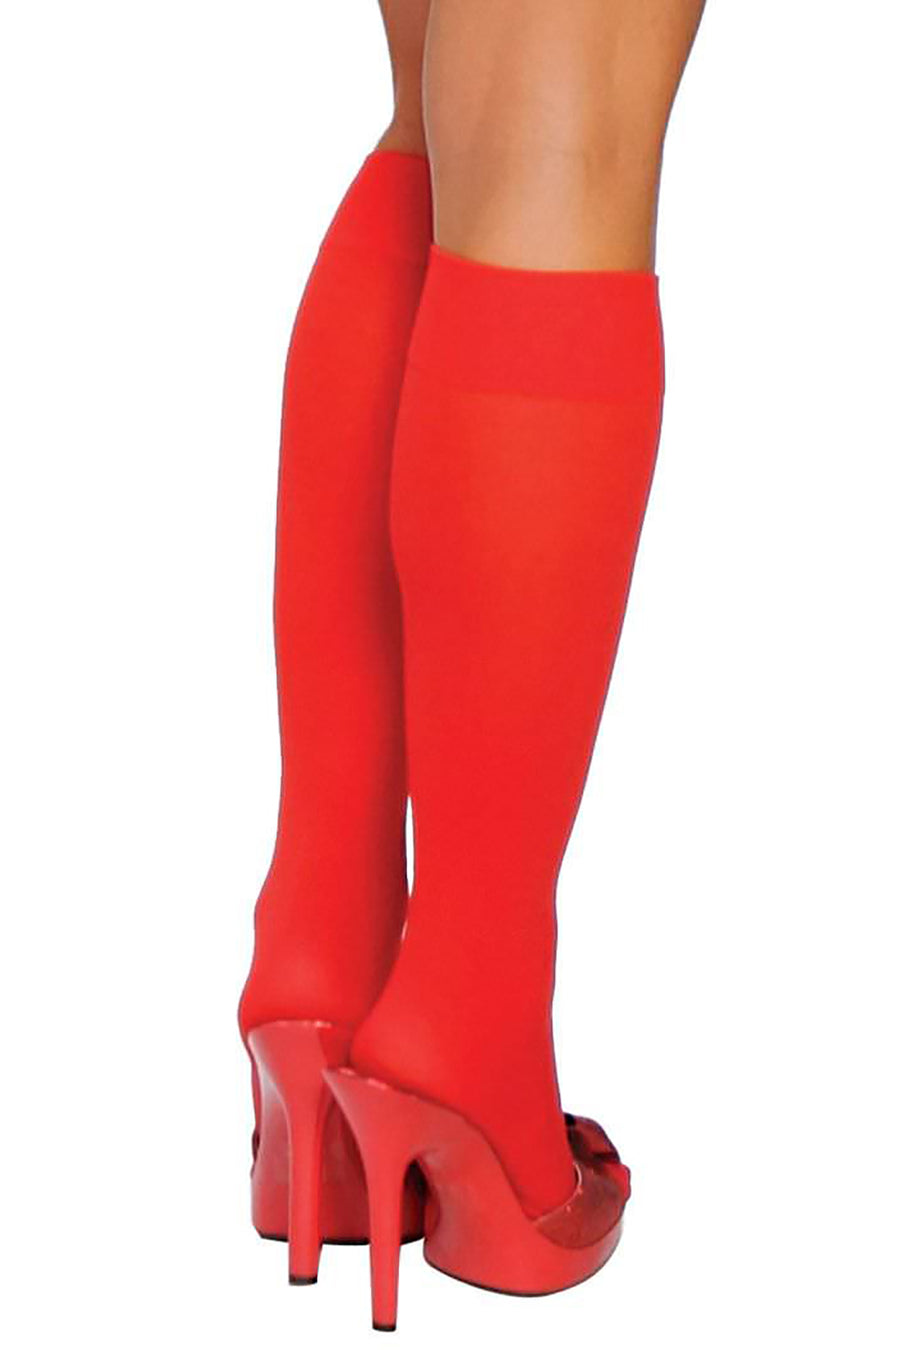 Knee High Stockings - Accessories, Roma - YourLamode